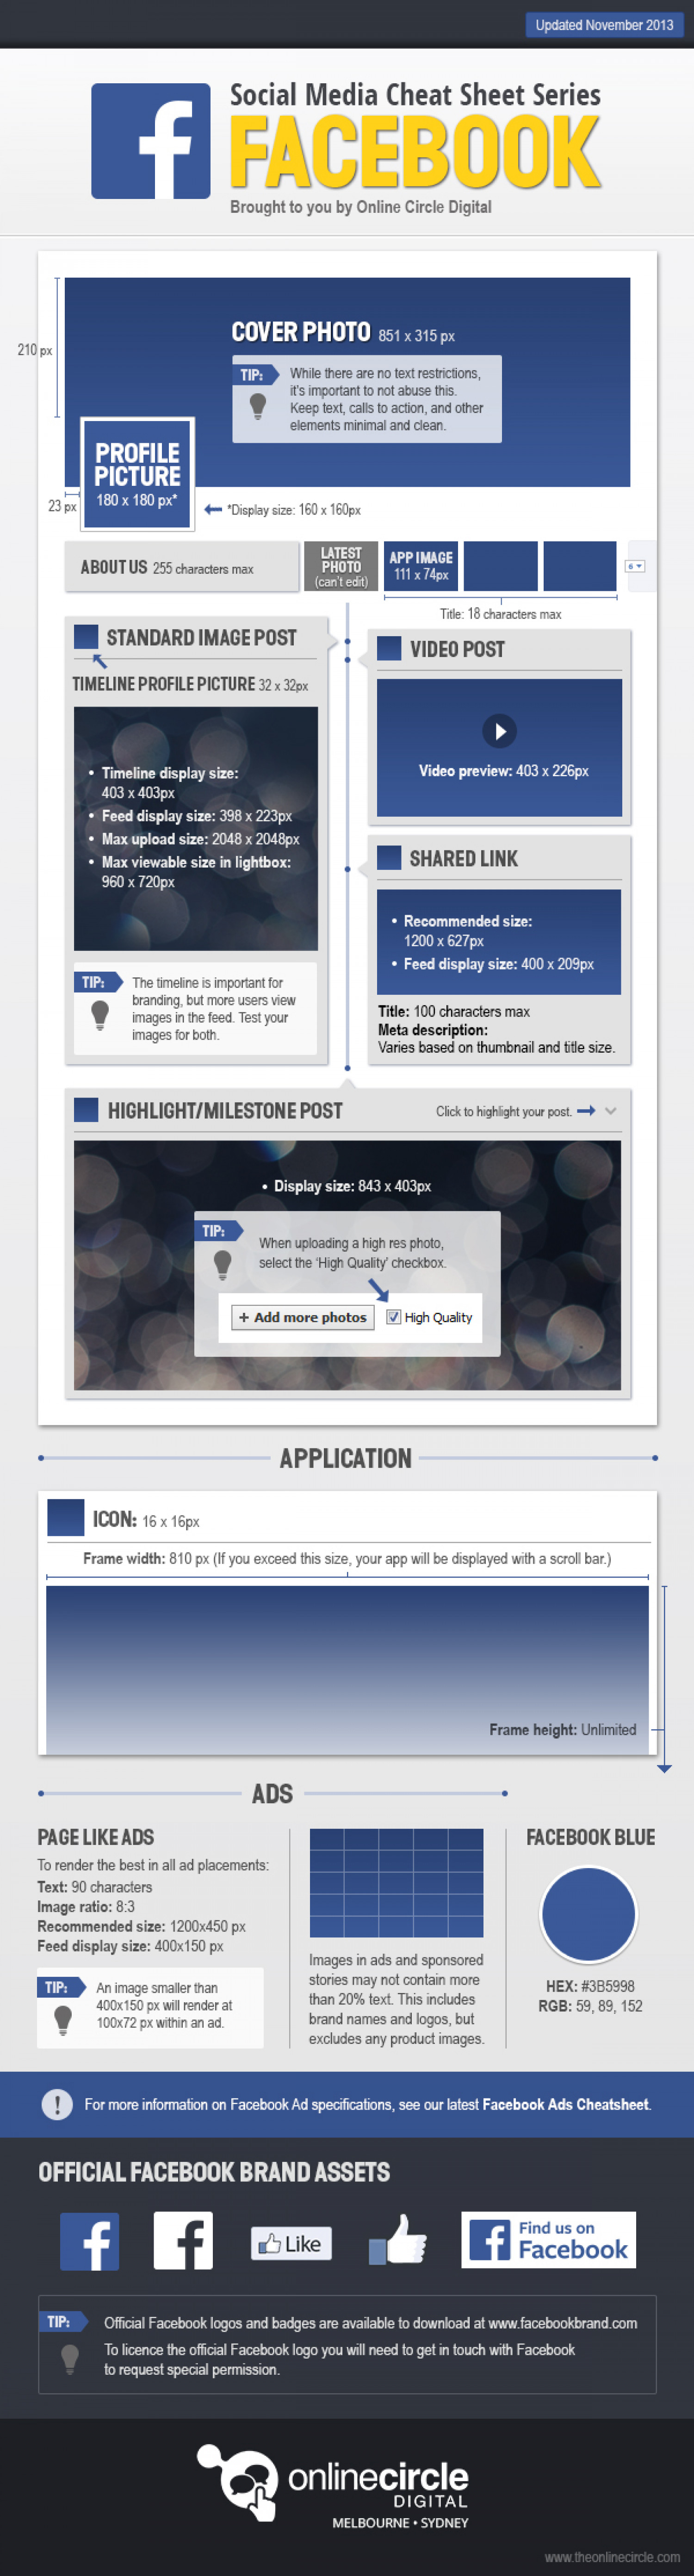 Facebook sizes and dimensions cheat sheet 2013 Infographic